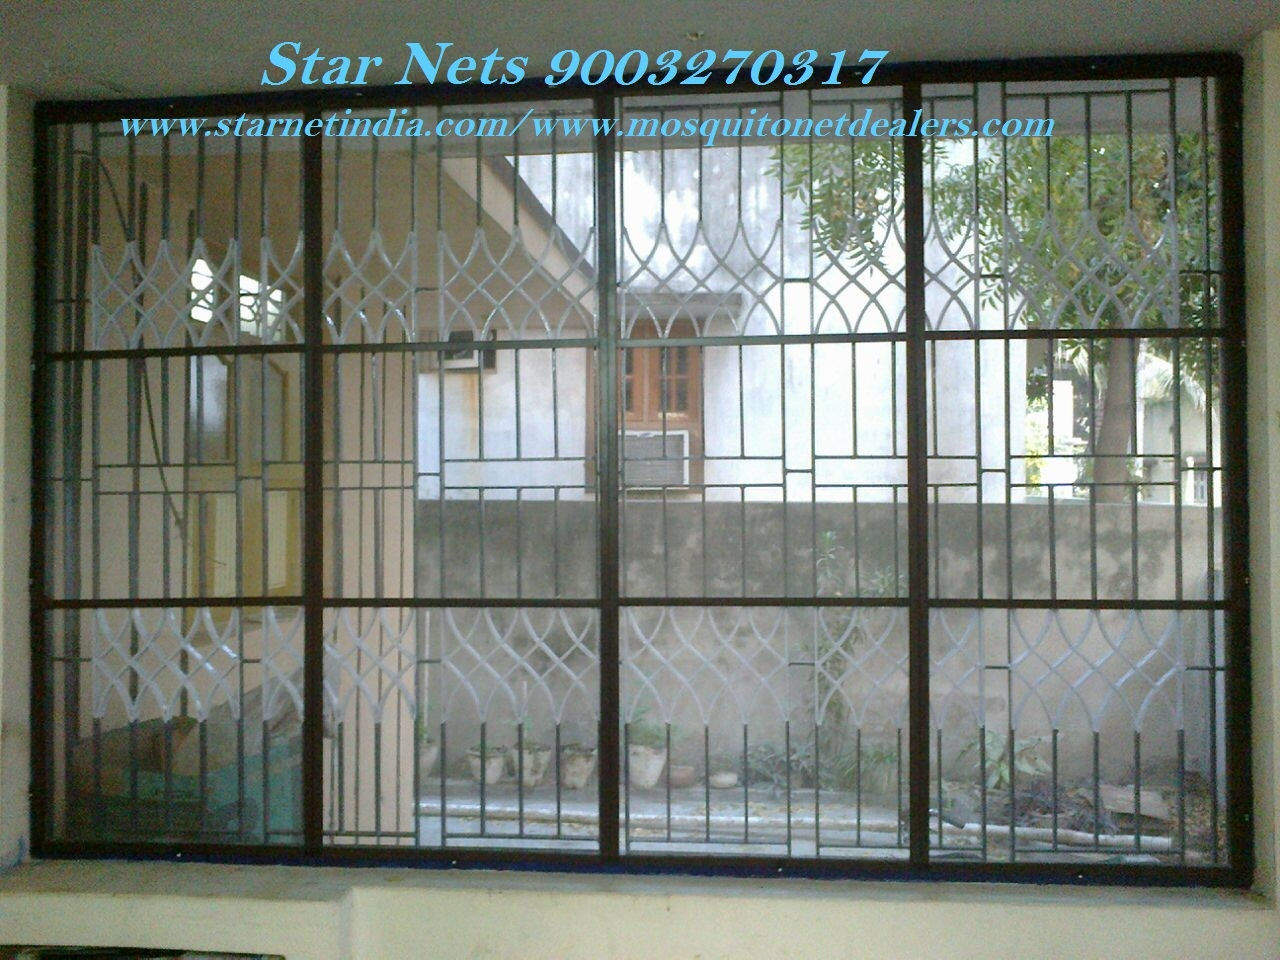 Top 100 Mosquito Net Dealers In Medavakkam Chennai Best Mosquito